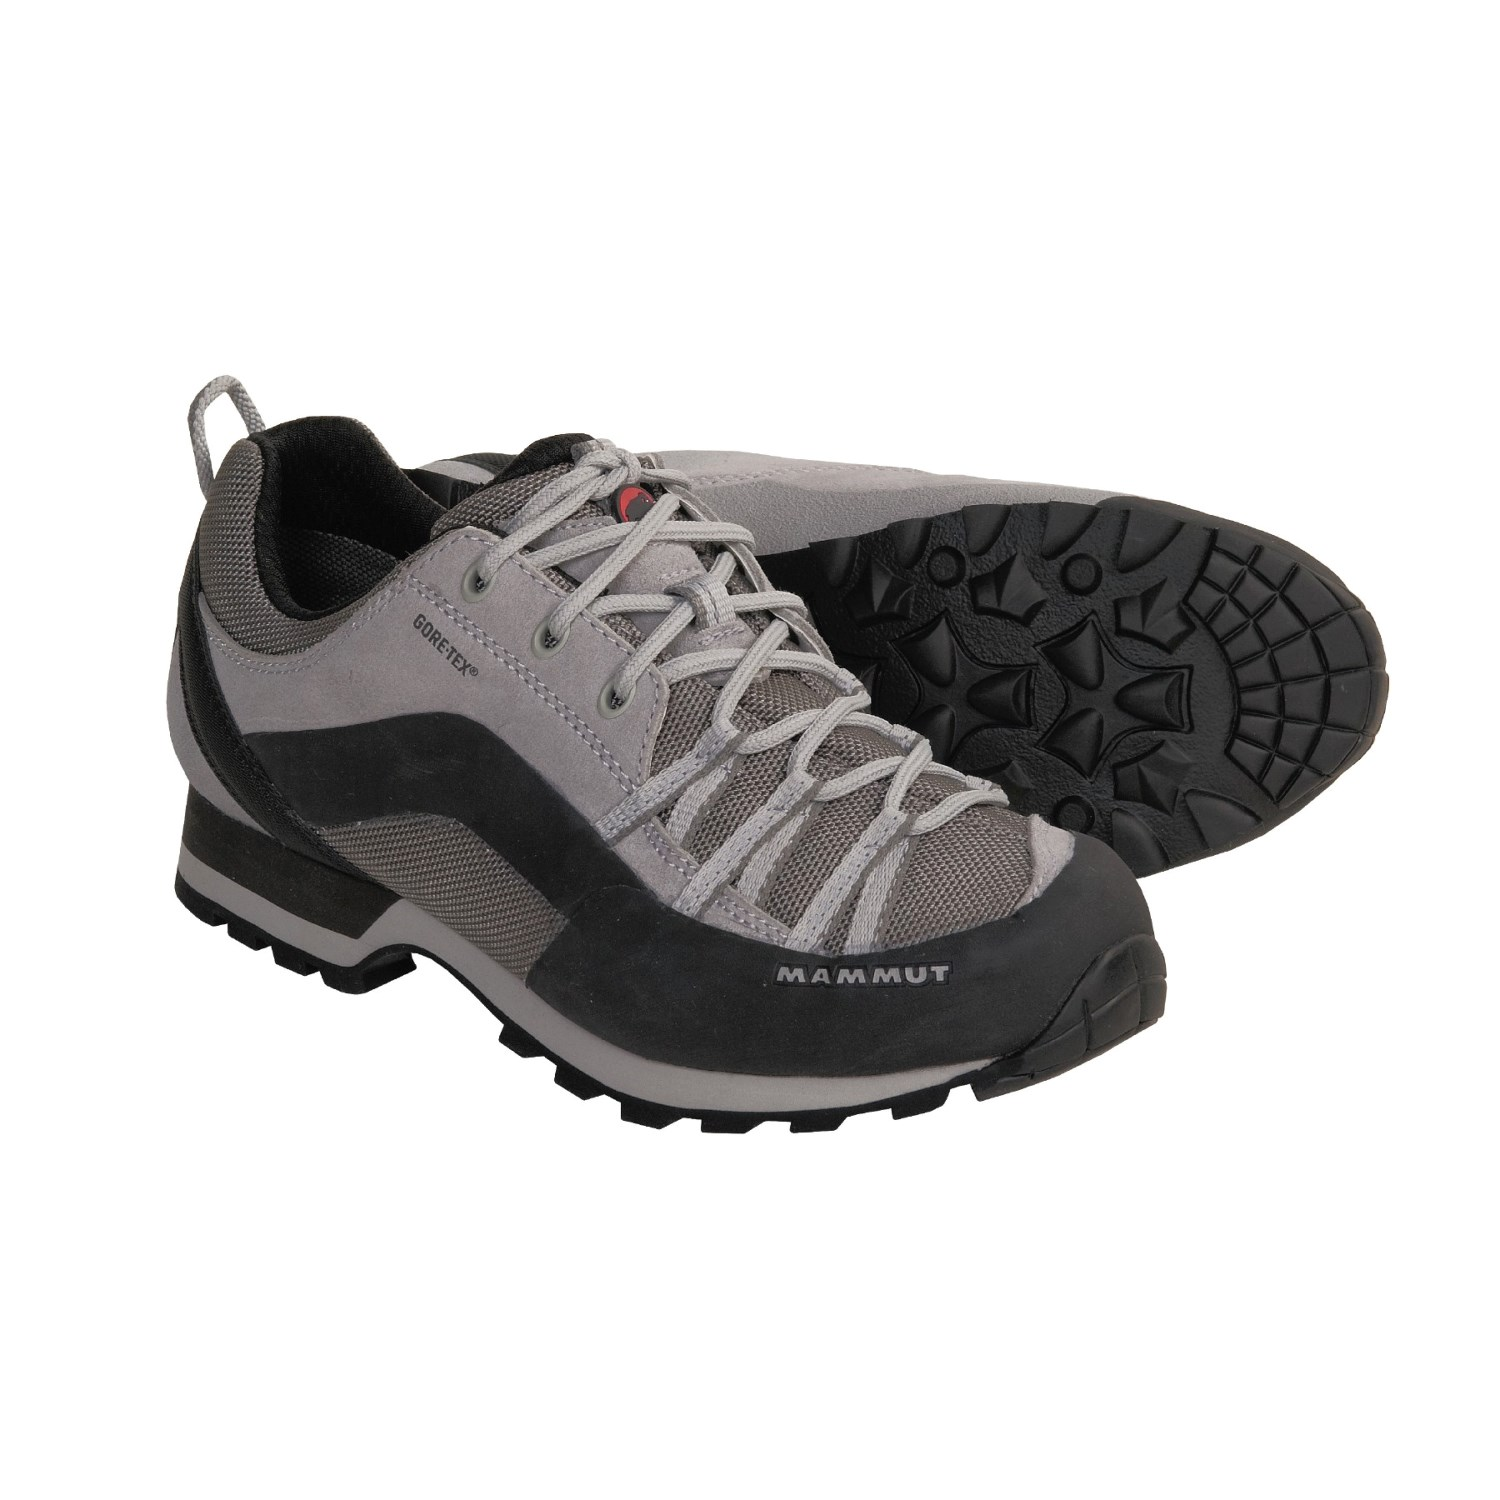 mammut mt nebo gore tex trail shoes for women 2764g. Black Bedroom Furniture Sets. Home Design Ideas